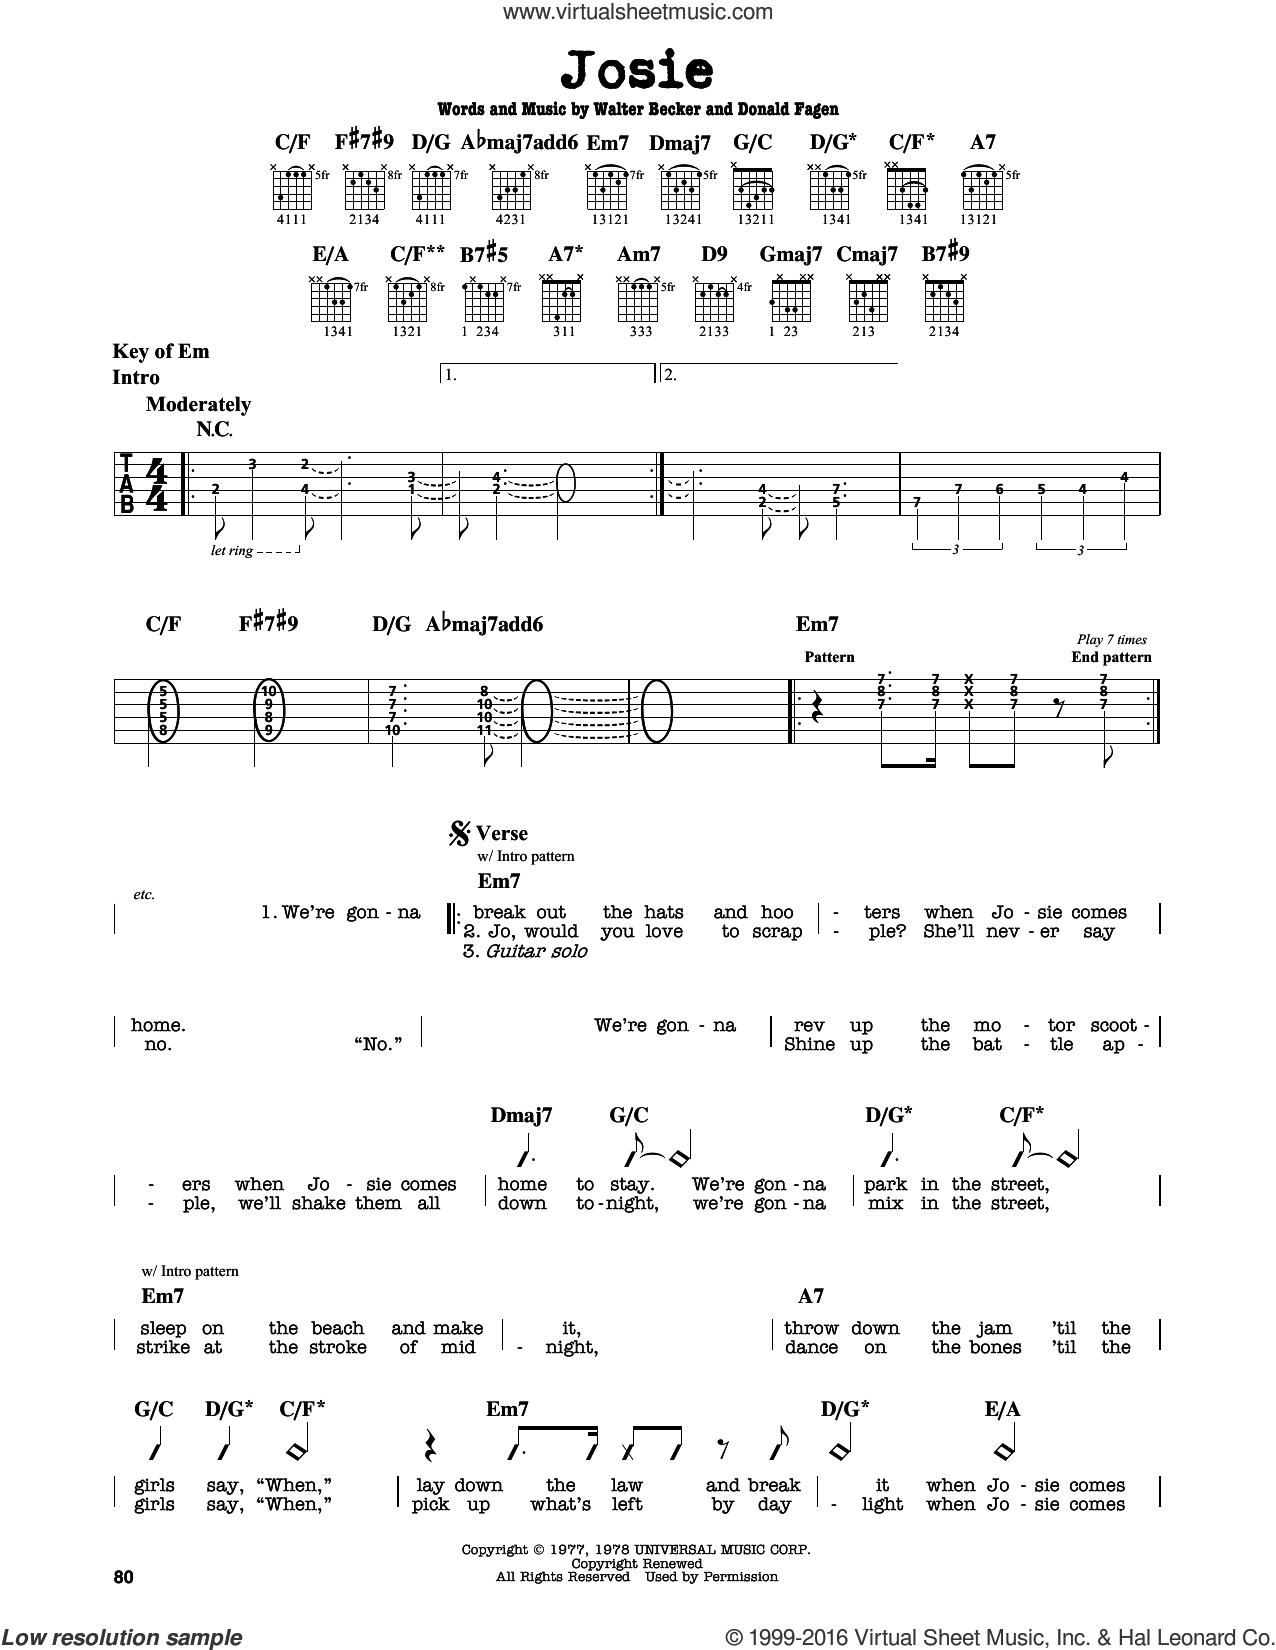 Josie sheet music for guitar solo (lead sheet) by Walter Becker and Donald Fagen. Score Image Preview.